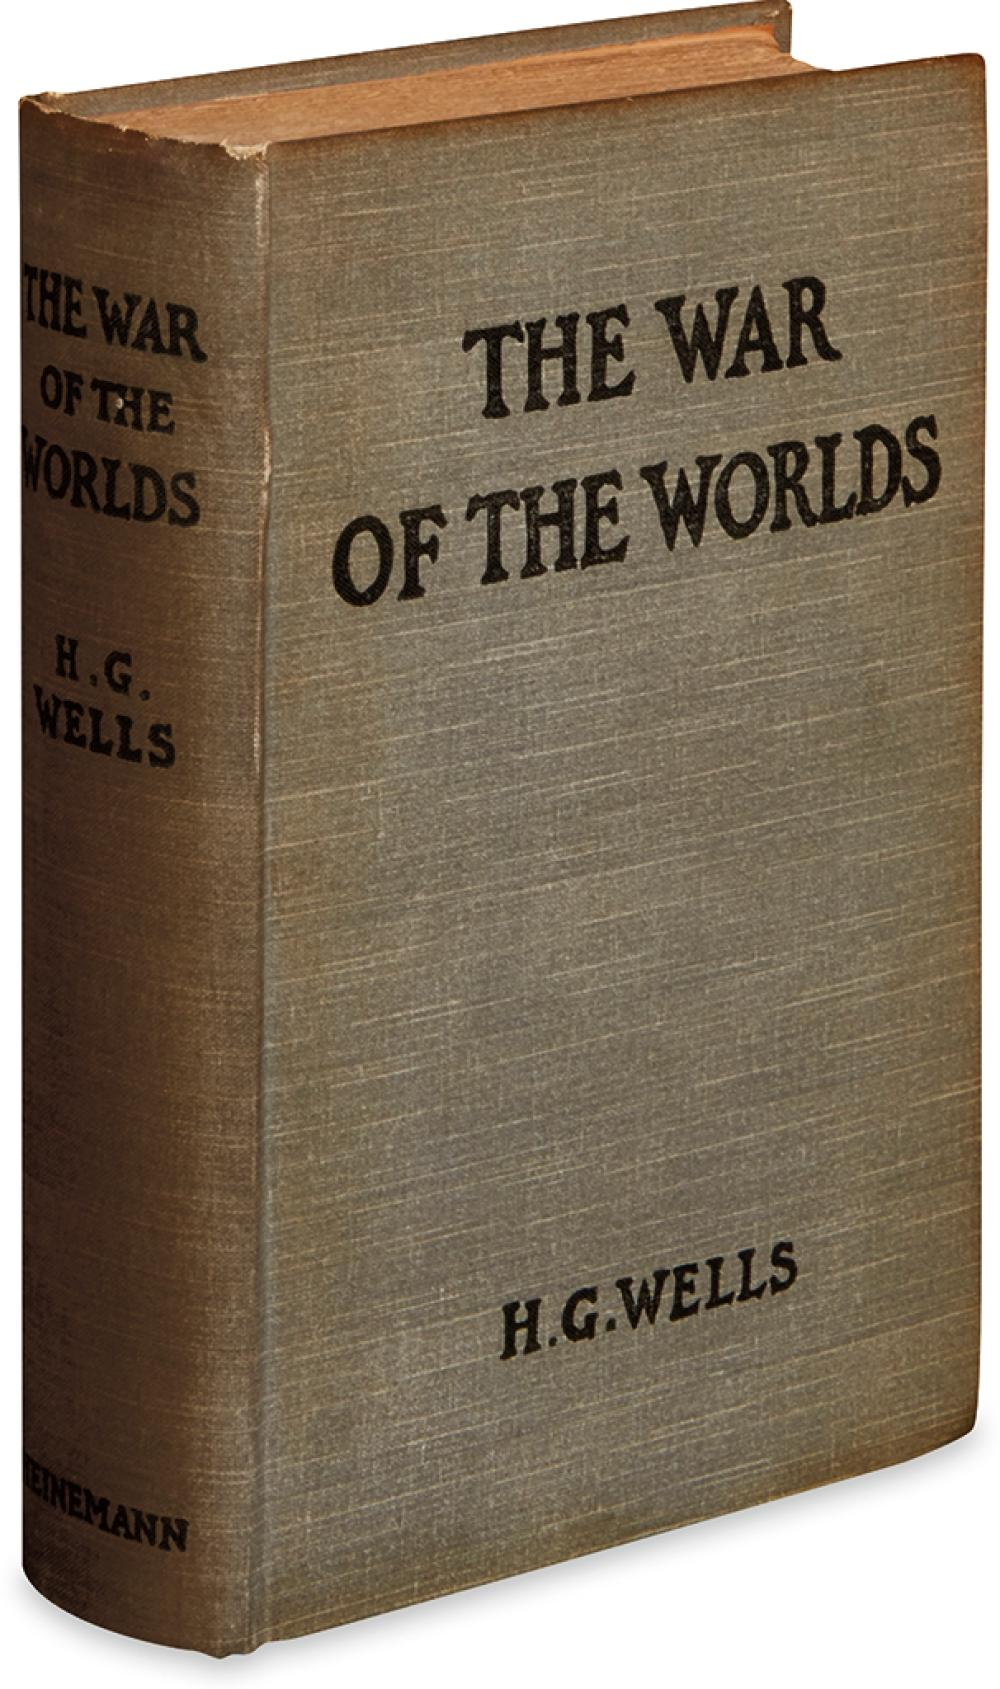 WELLS, H.G. War of the Worlds.